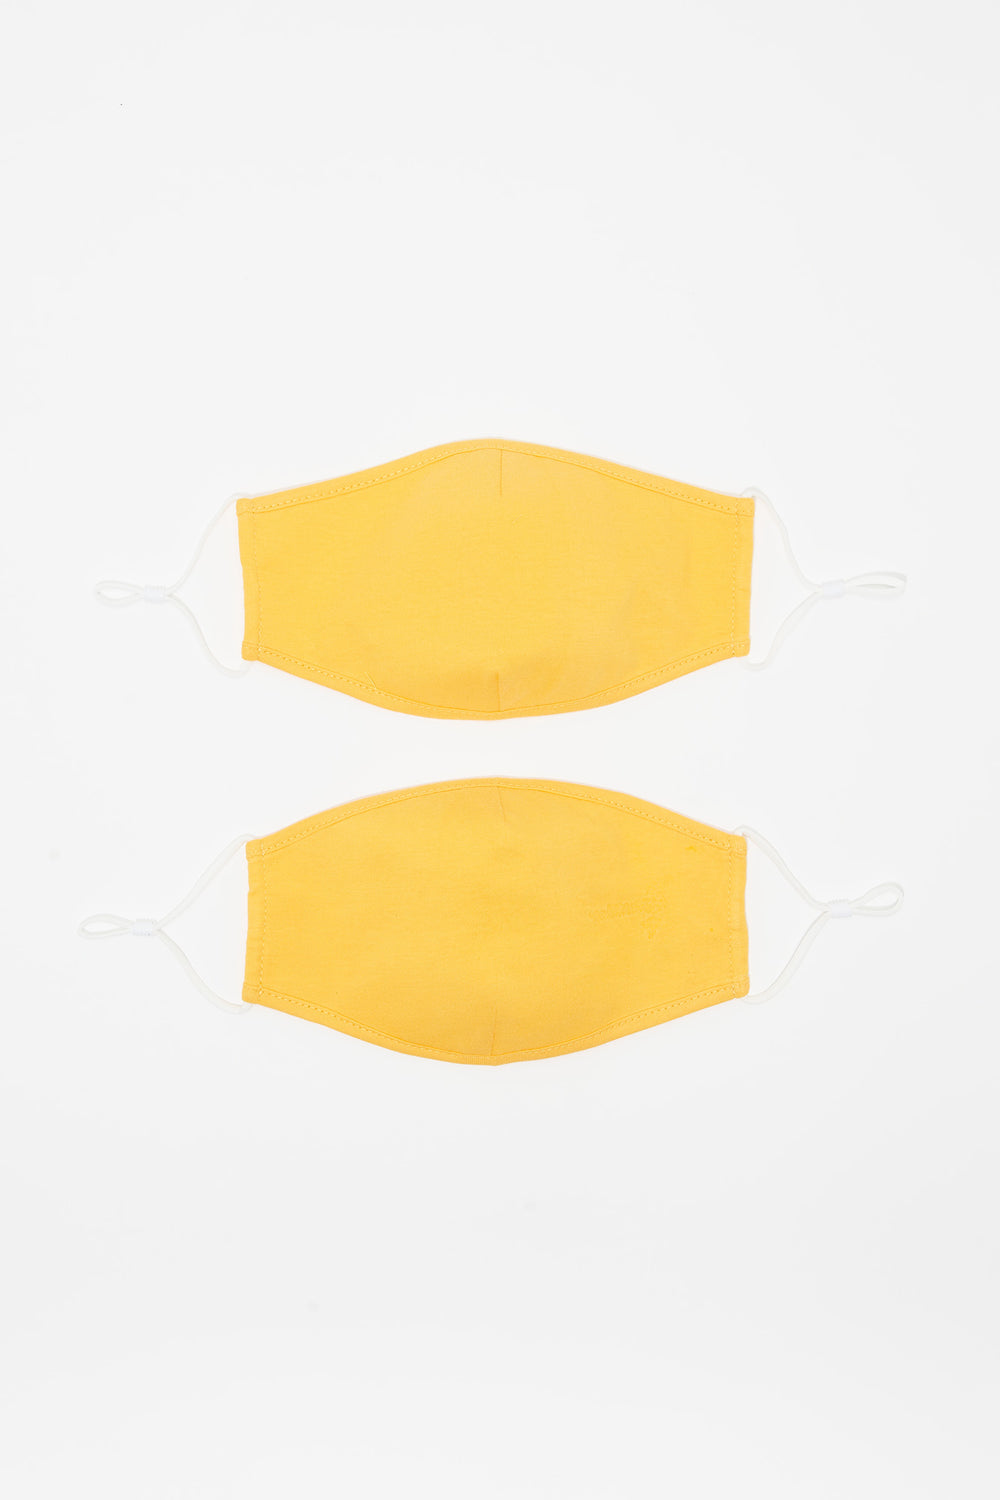 Washable & Reusable Double Layer Protective Yellow Face Masks (2 Pack) Mustard